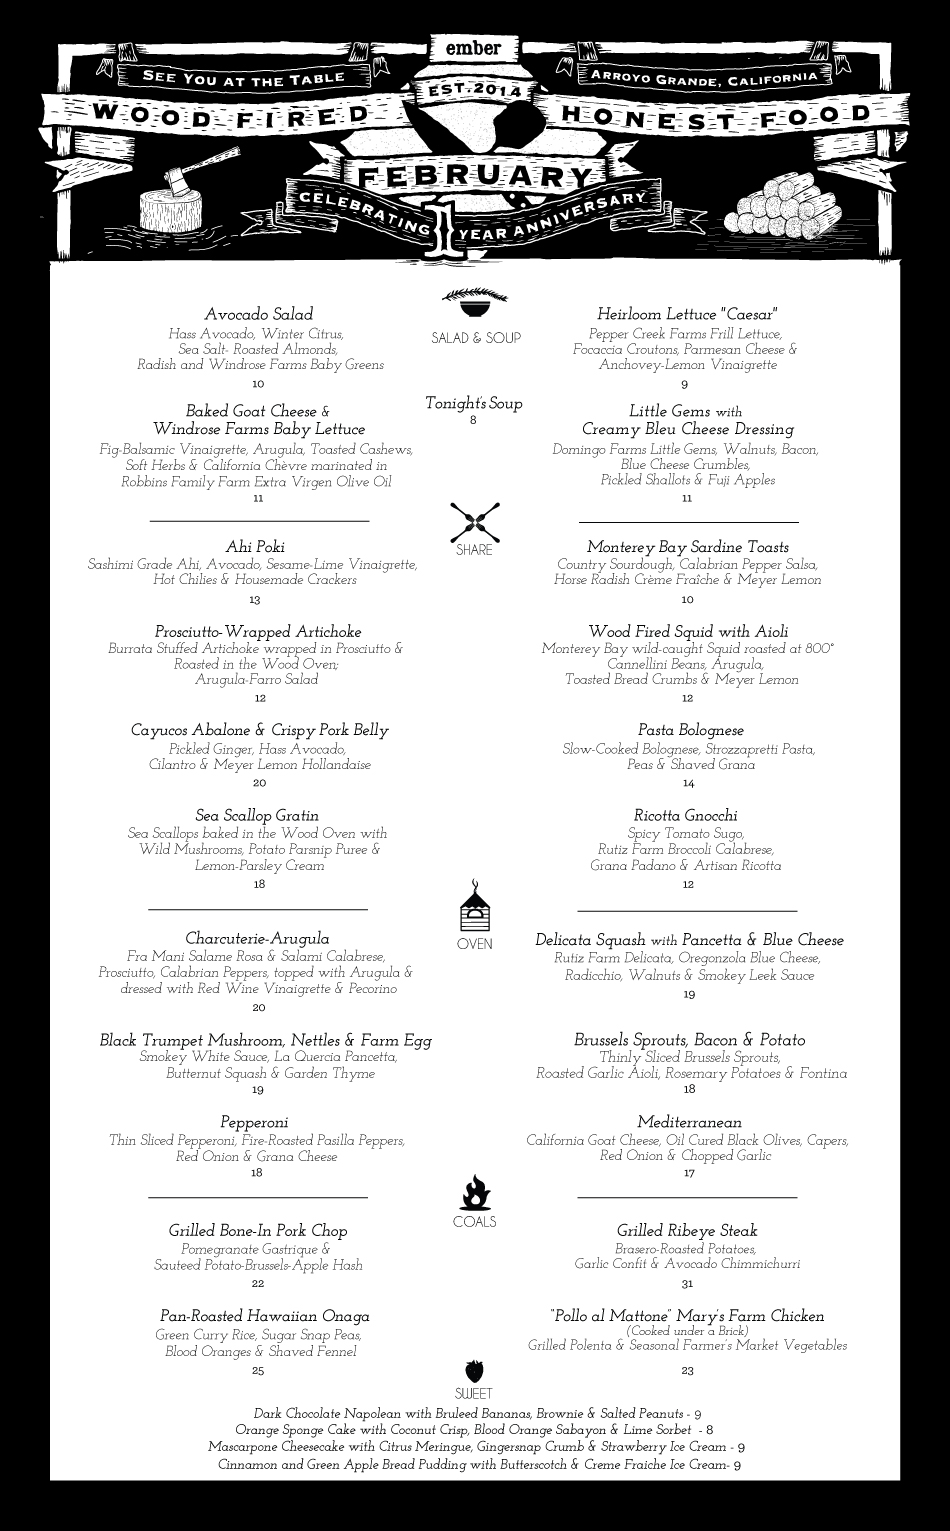 ember-restaurant-february-menu